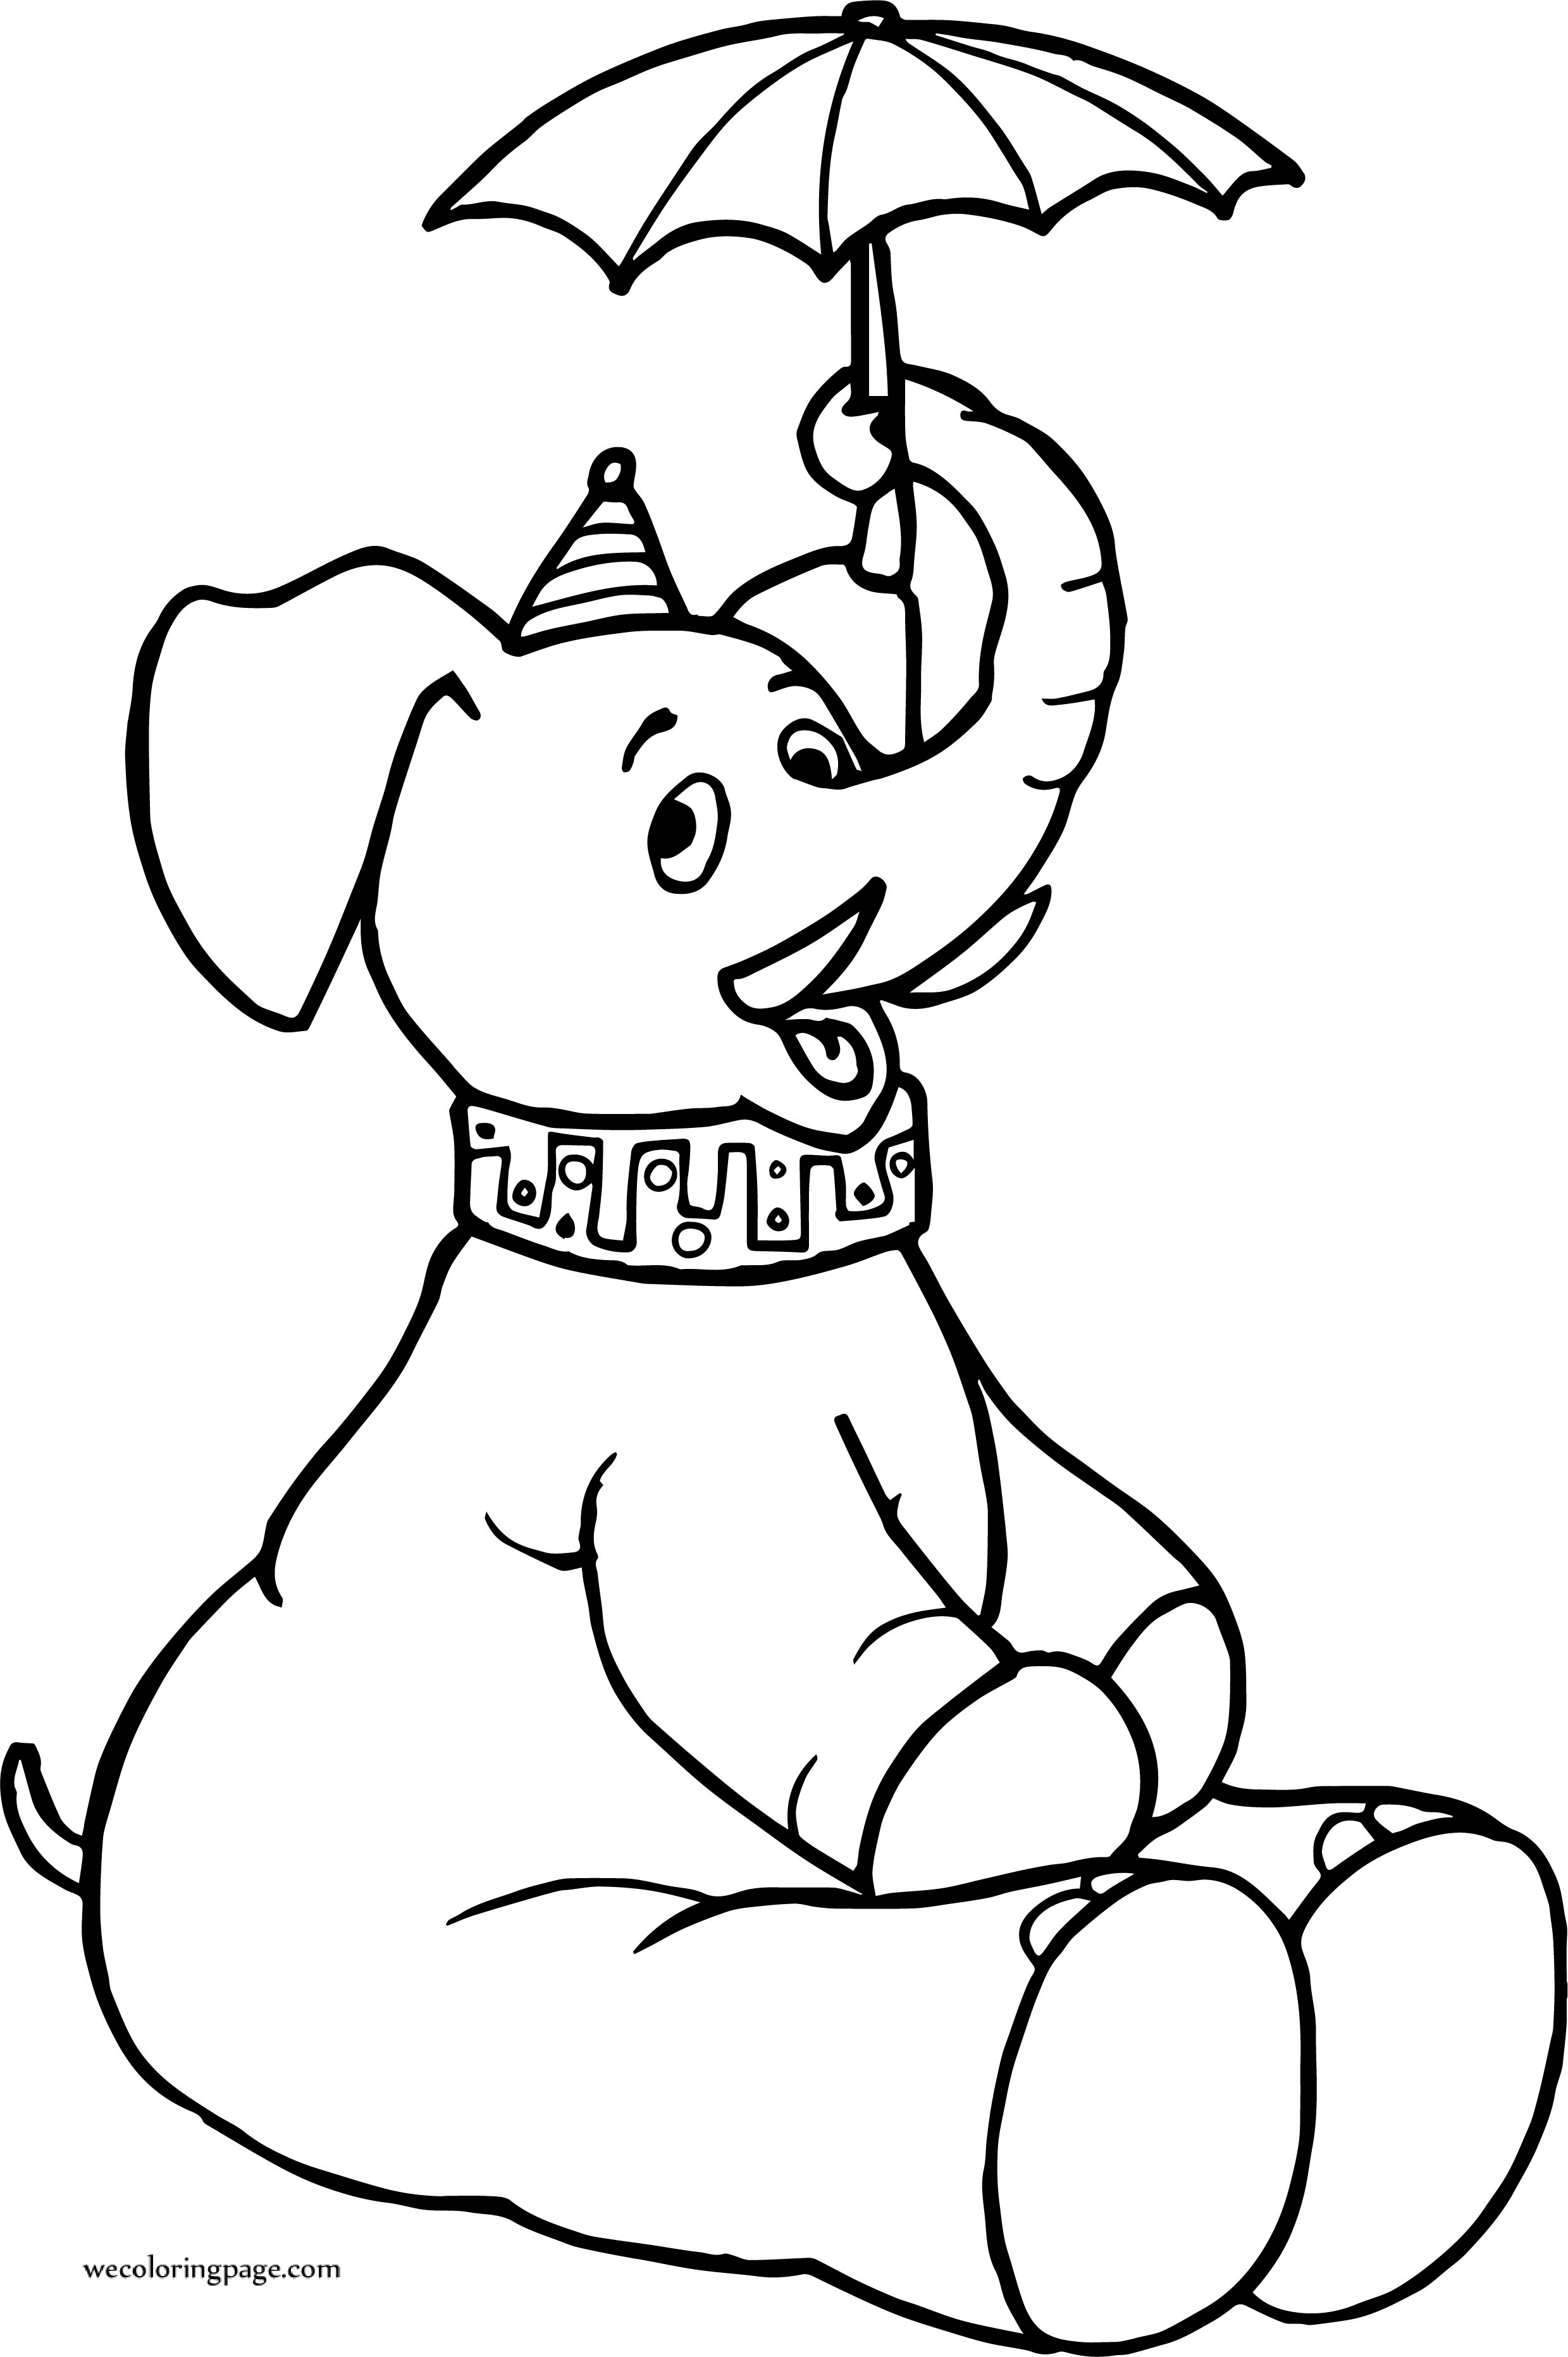 Elephant Umbrella Circus Coloring Page